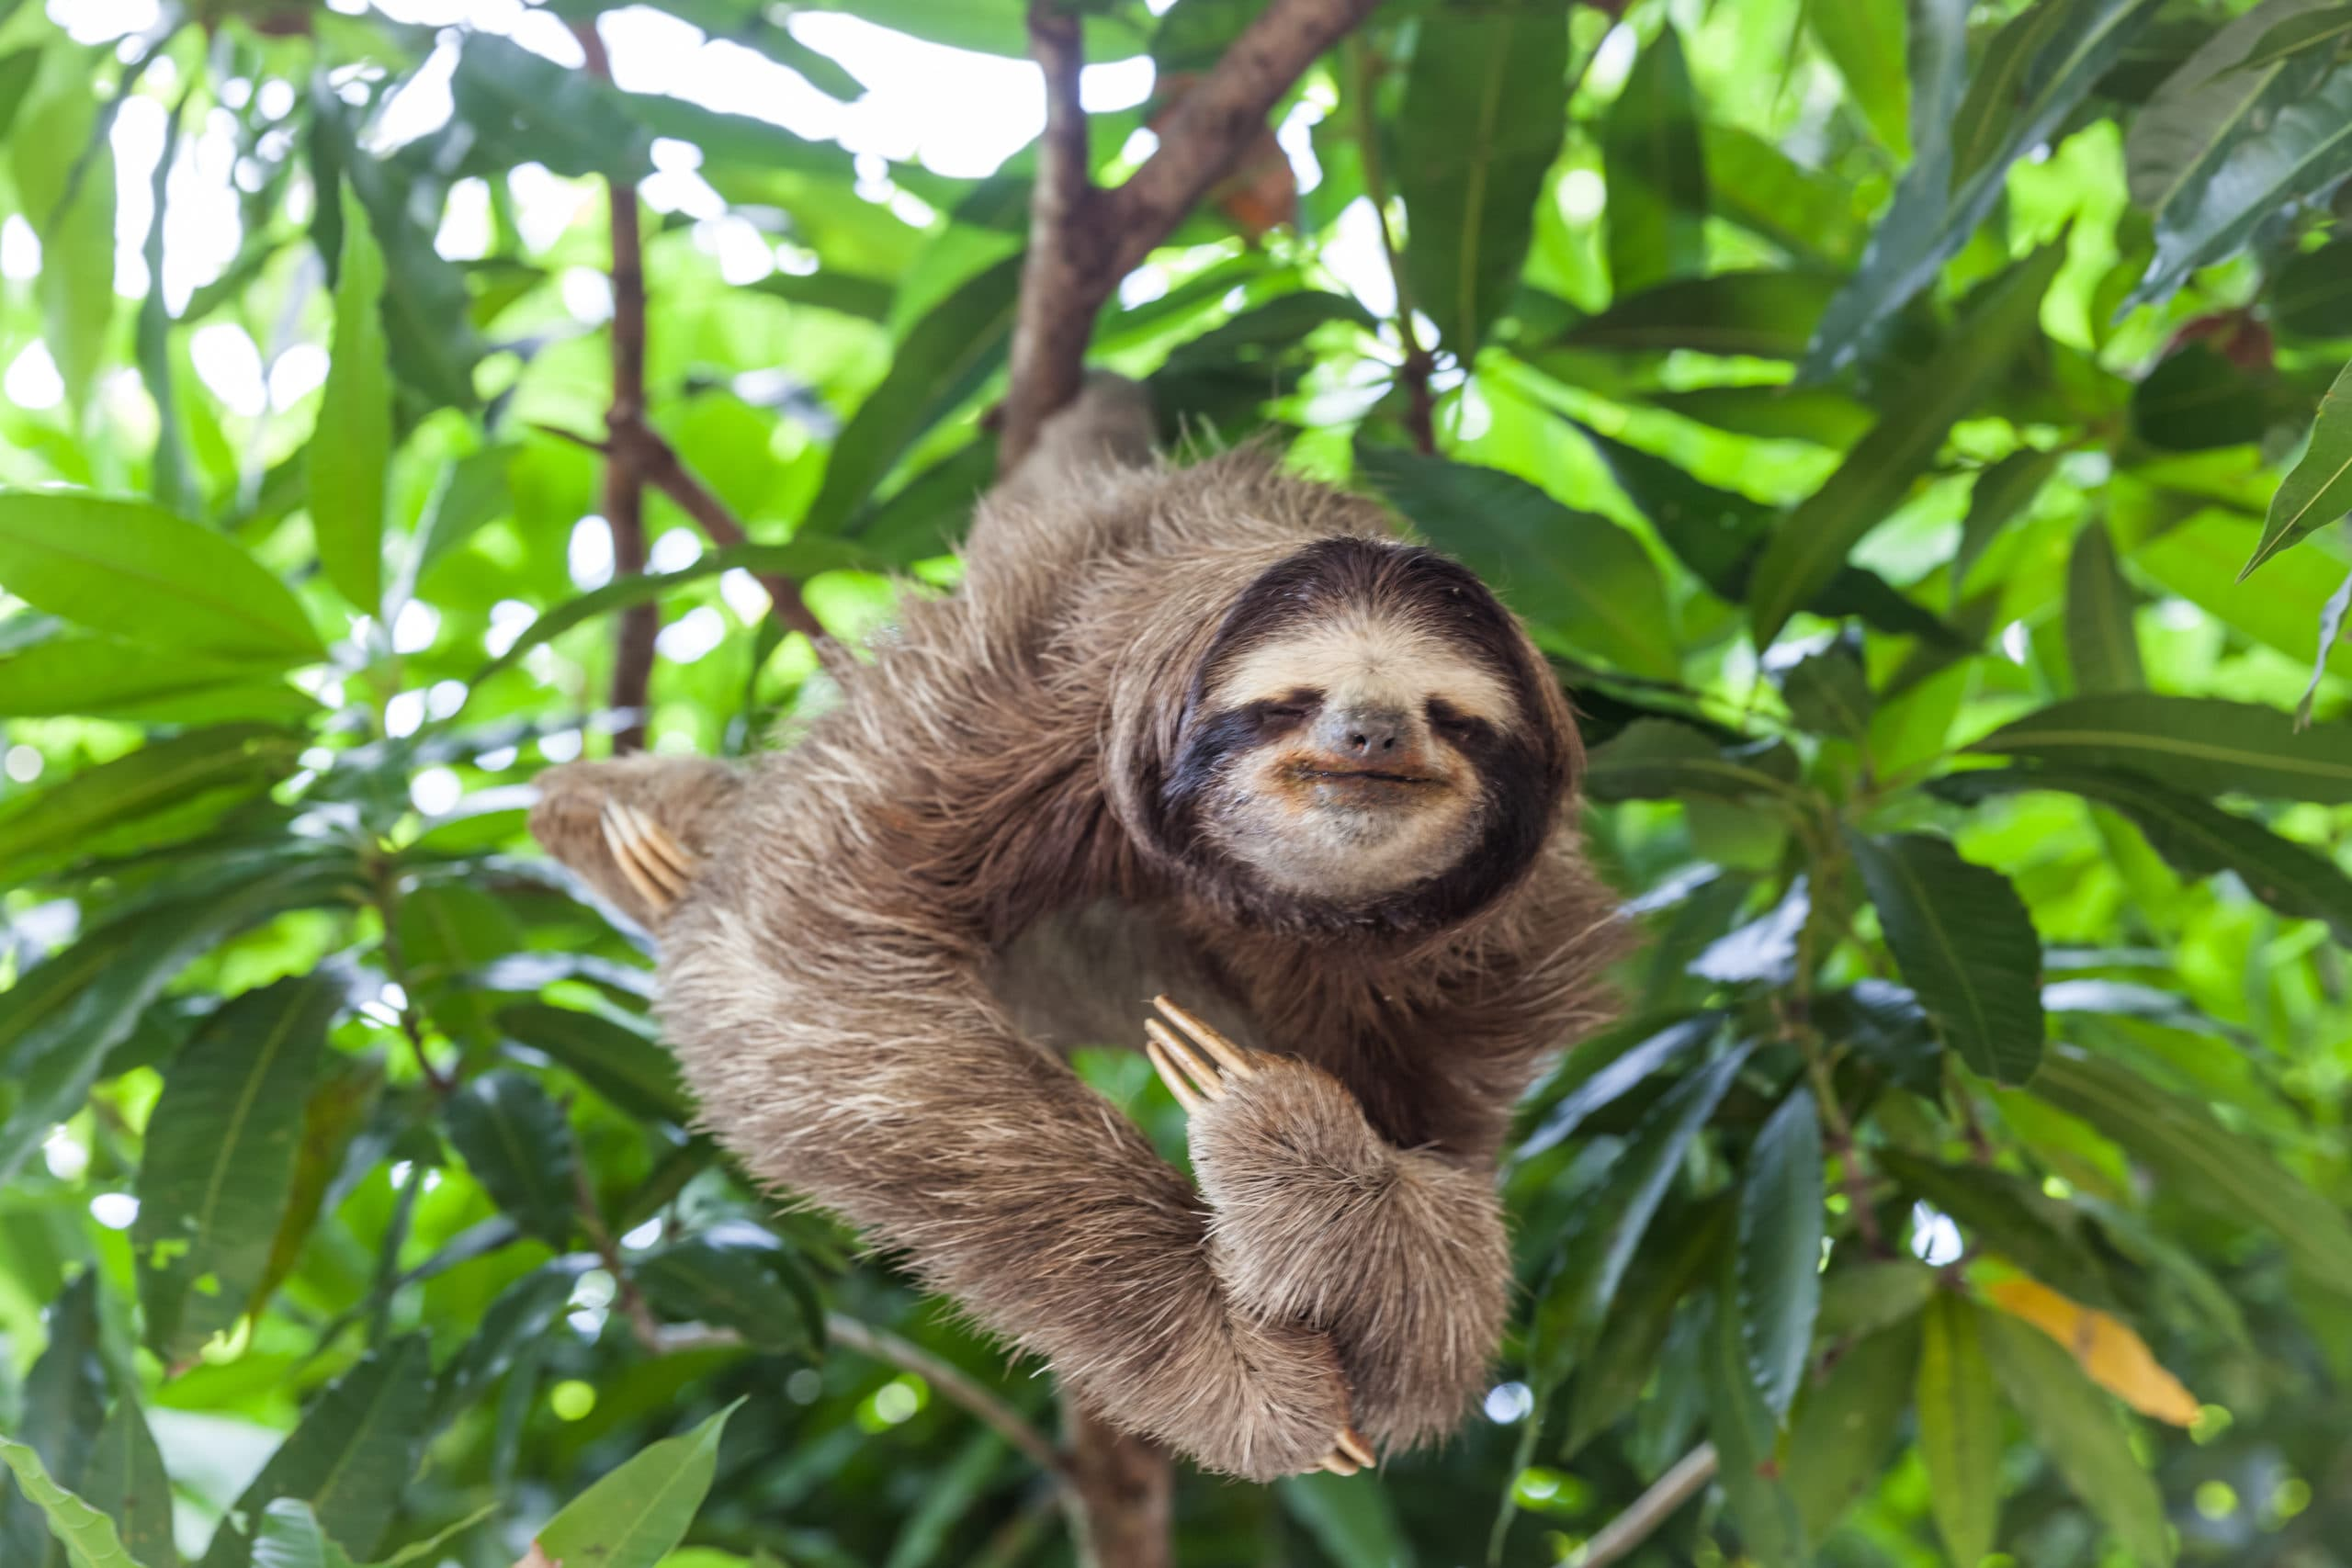 Is It Legal to Own a Pet Sloth In Florida?